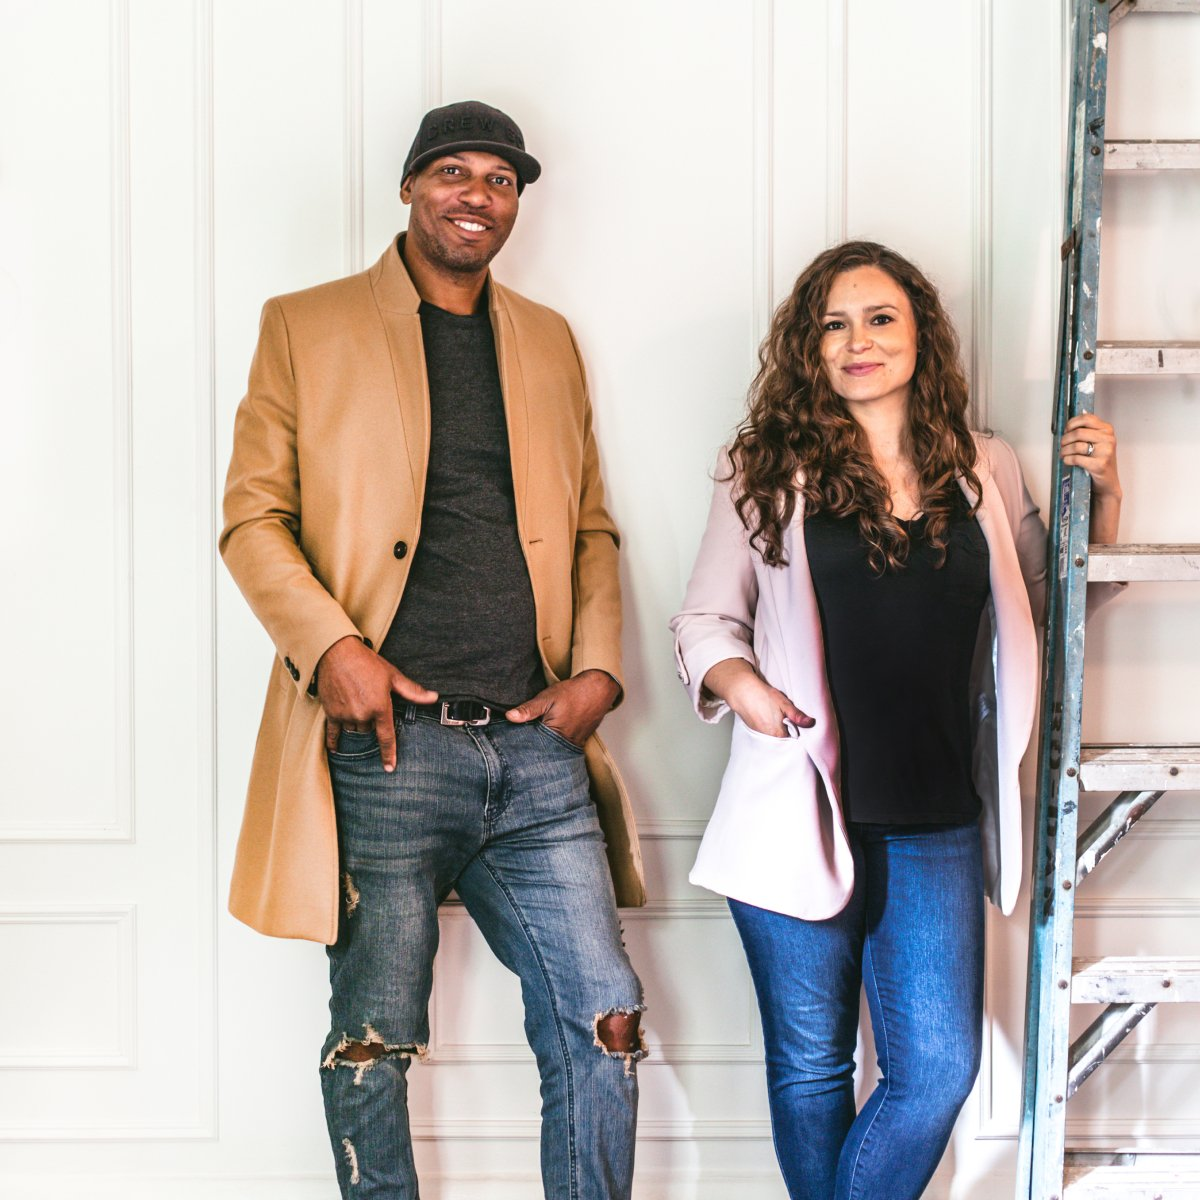 Mix Design Collective co-founders Bryan Williamson and Catherine Williamson